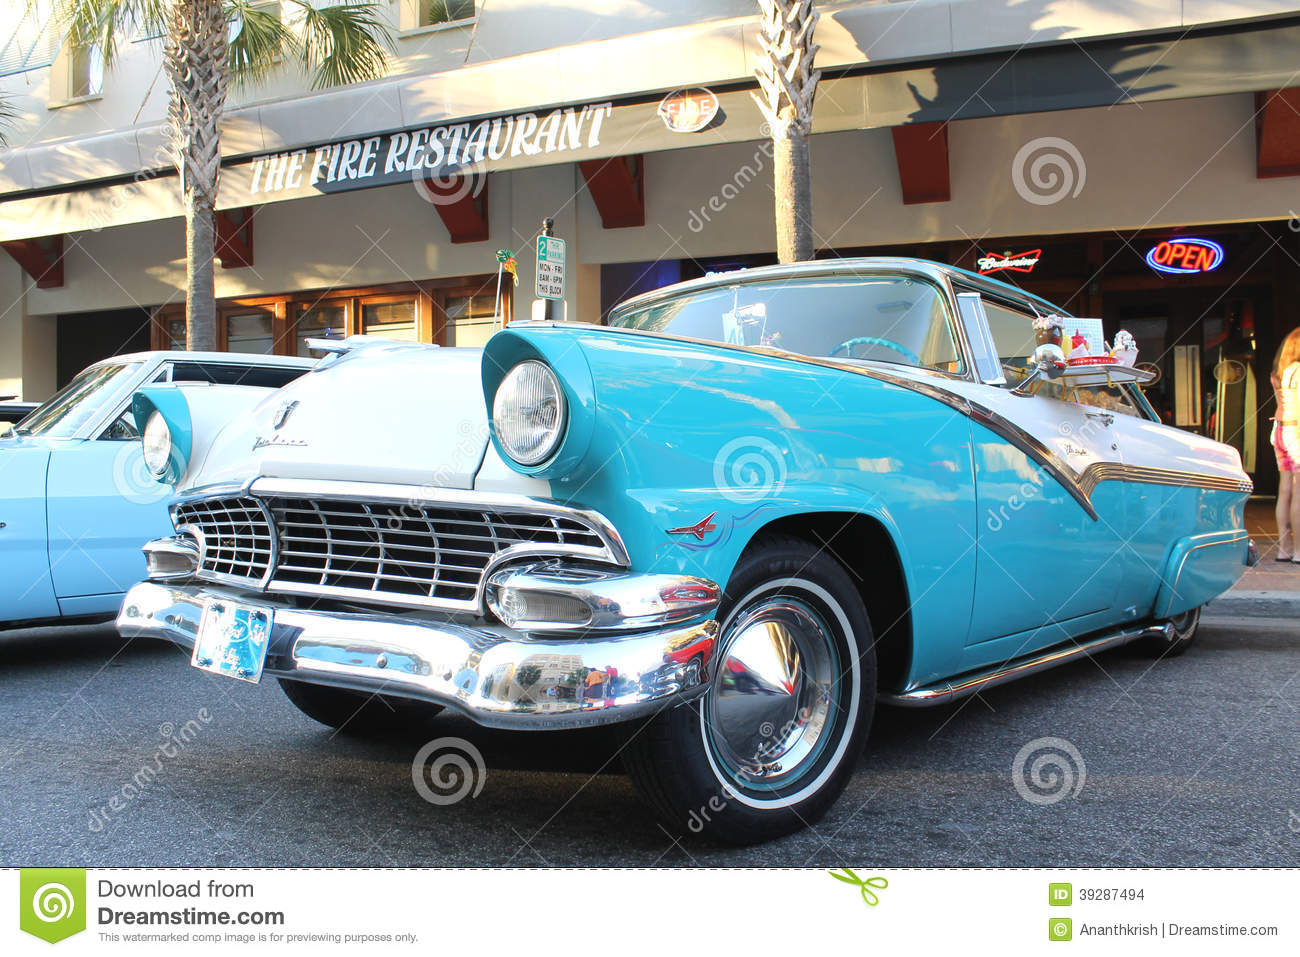 the old ford fairlane car at the car show editorial stock image image 39287494. Black Bedroom Furniture Sets. Home Design Ideas